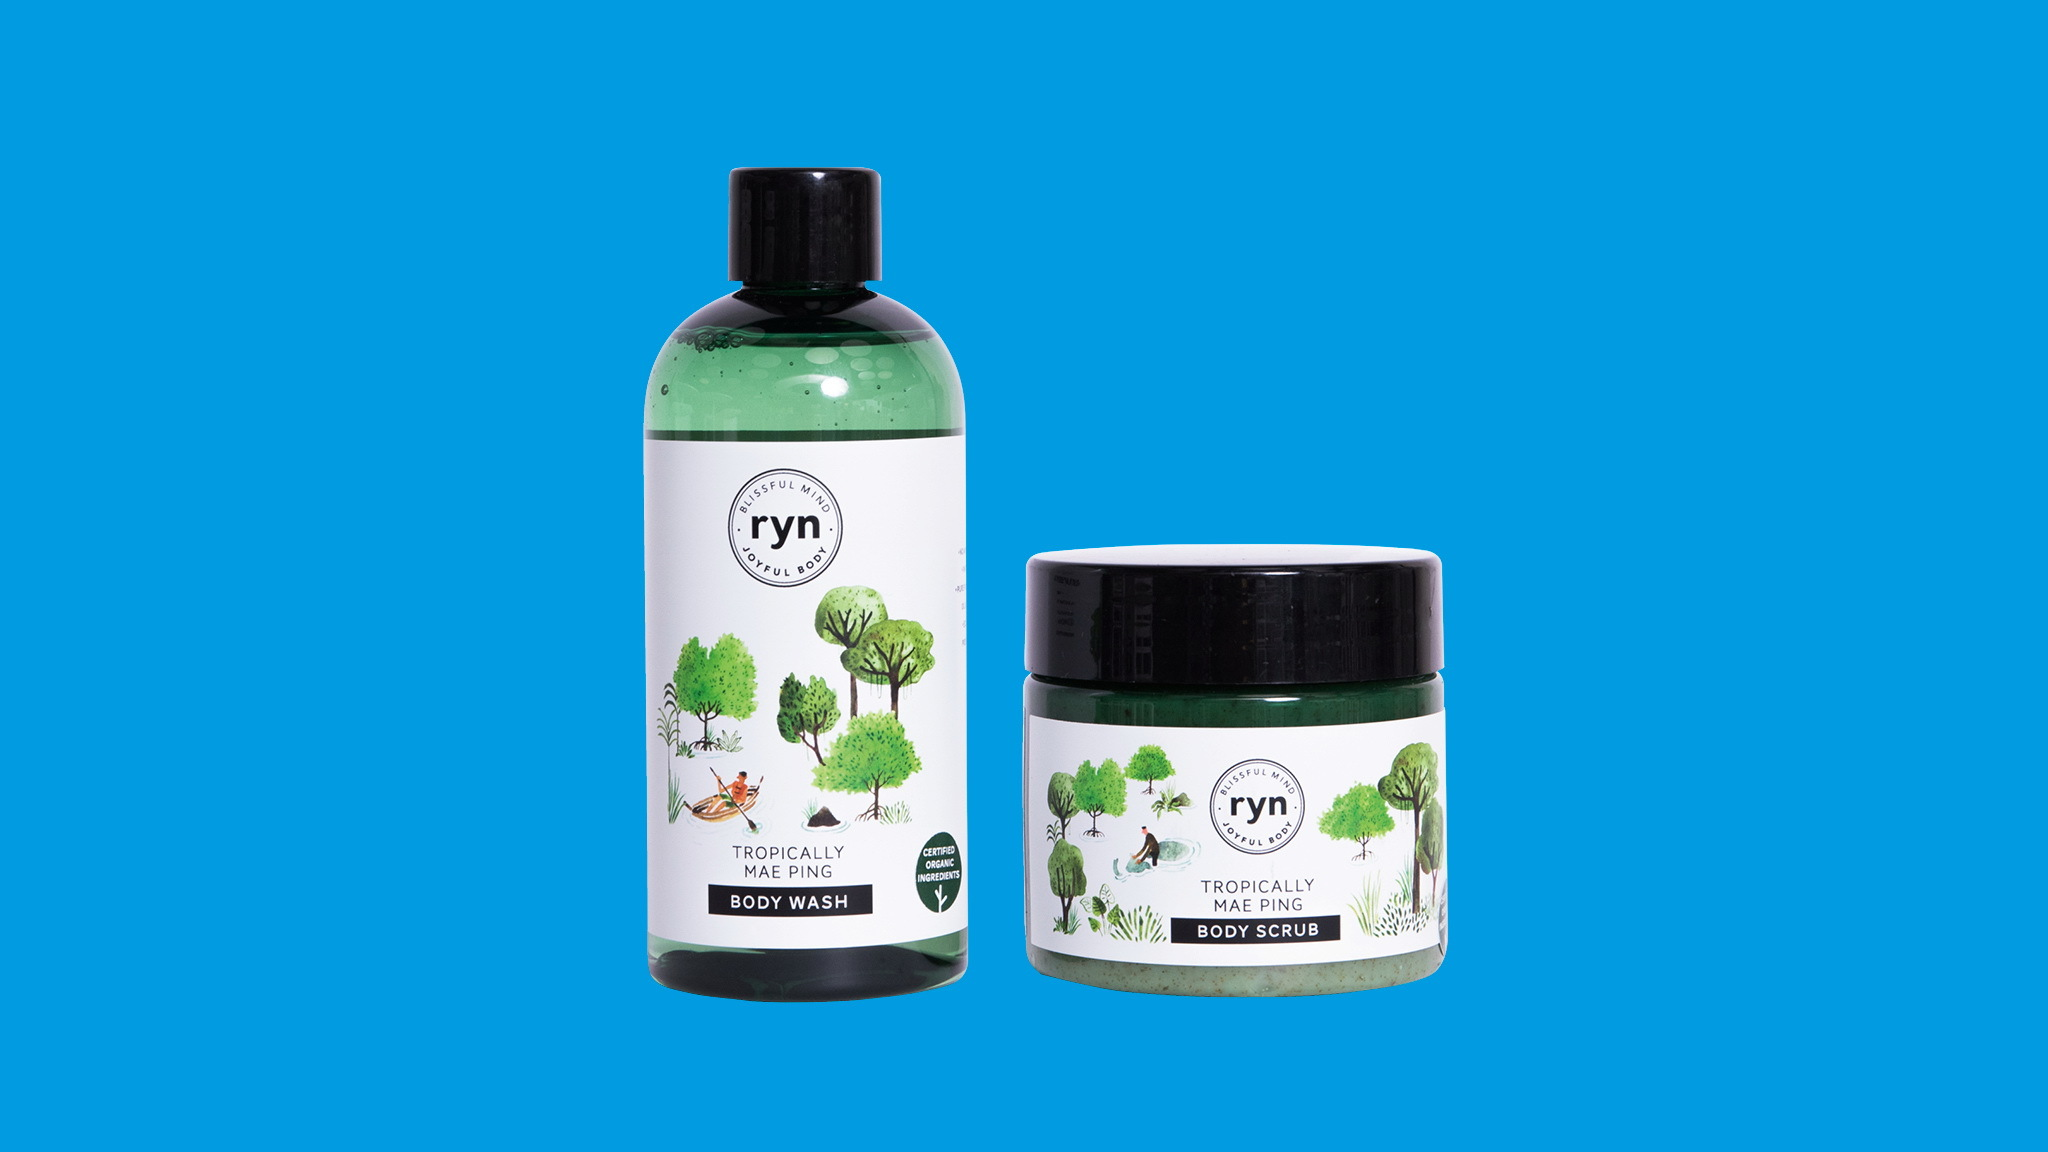 Tropically Mae Ping body wash and body scrub, Ryn, Ecotopia, Gift Guide